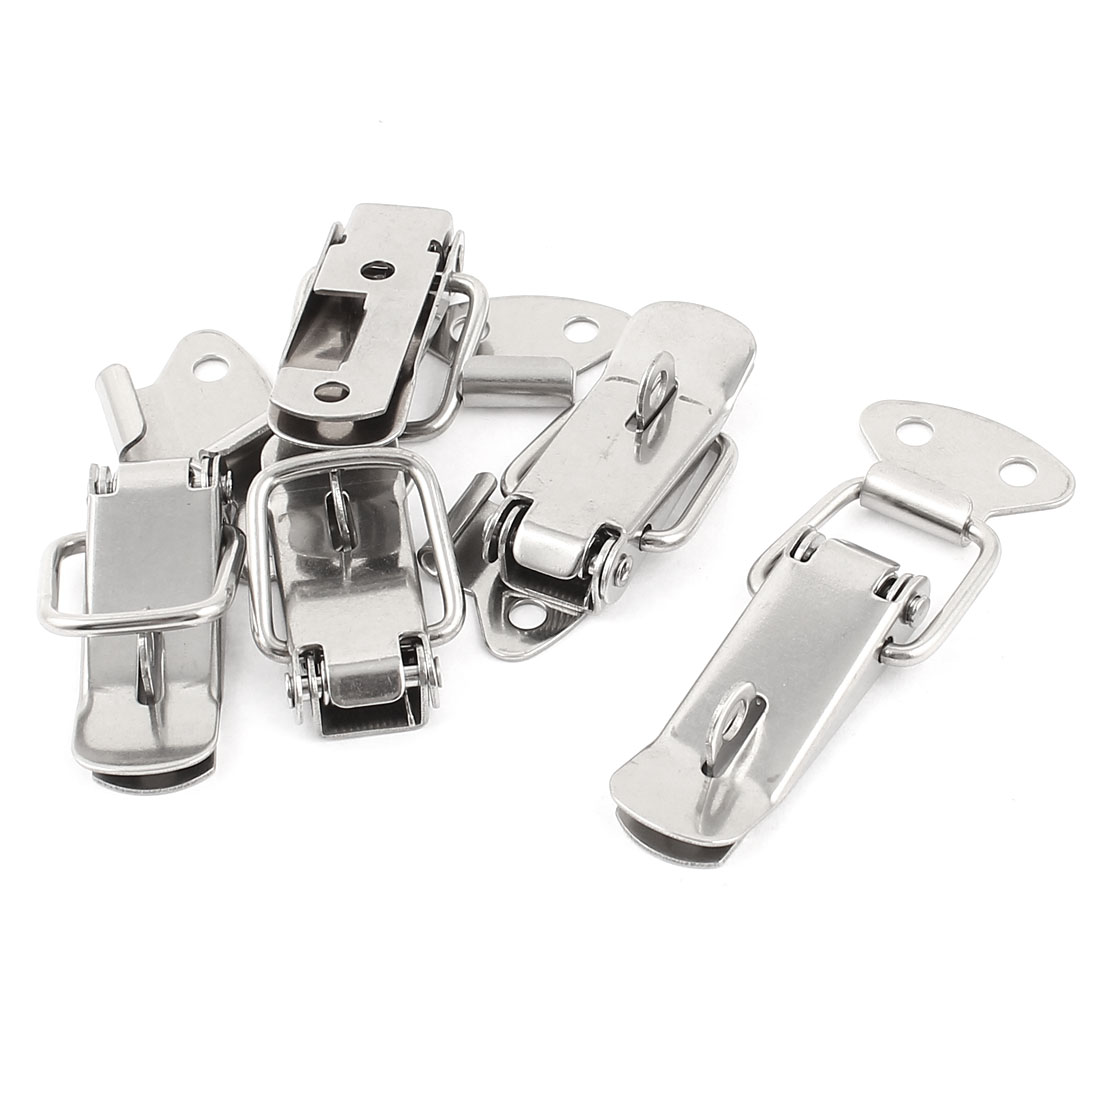 5 Pcs Steel Spring Draw Toggle Latch Catch for Cases Boxes Chests